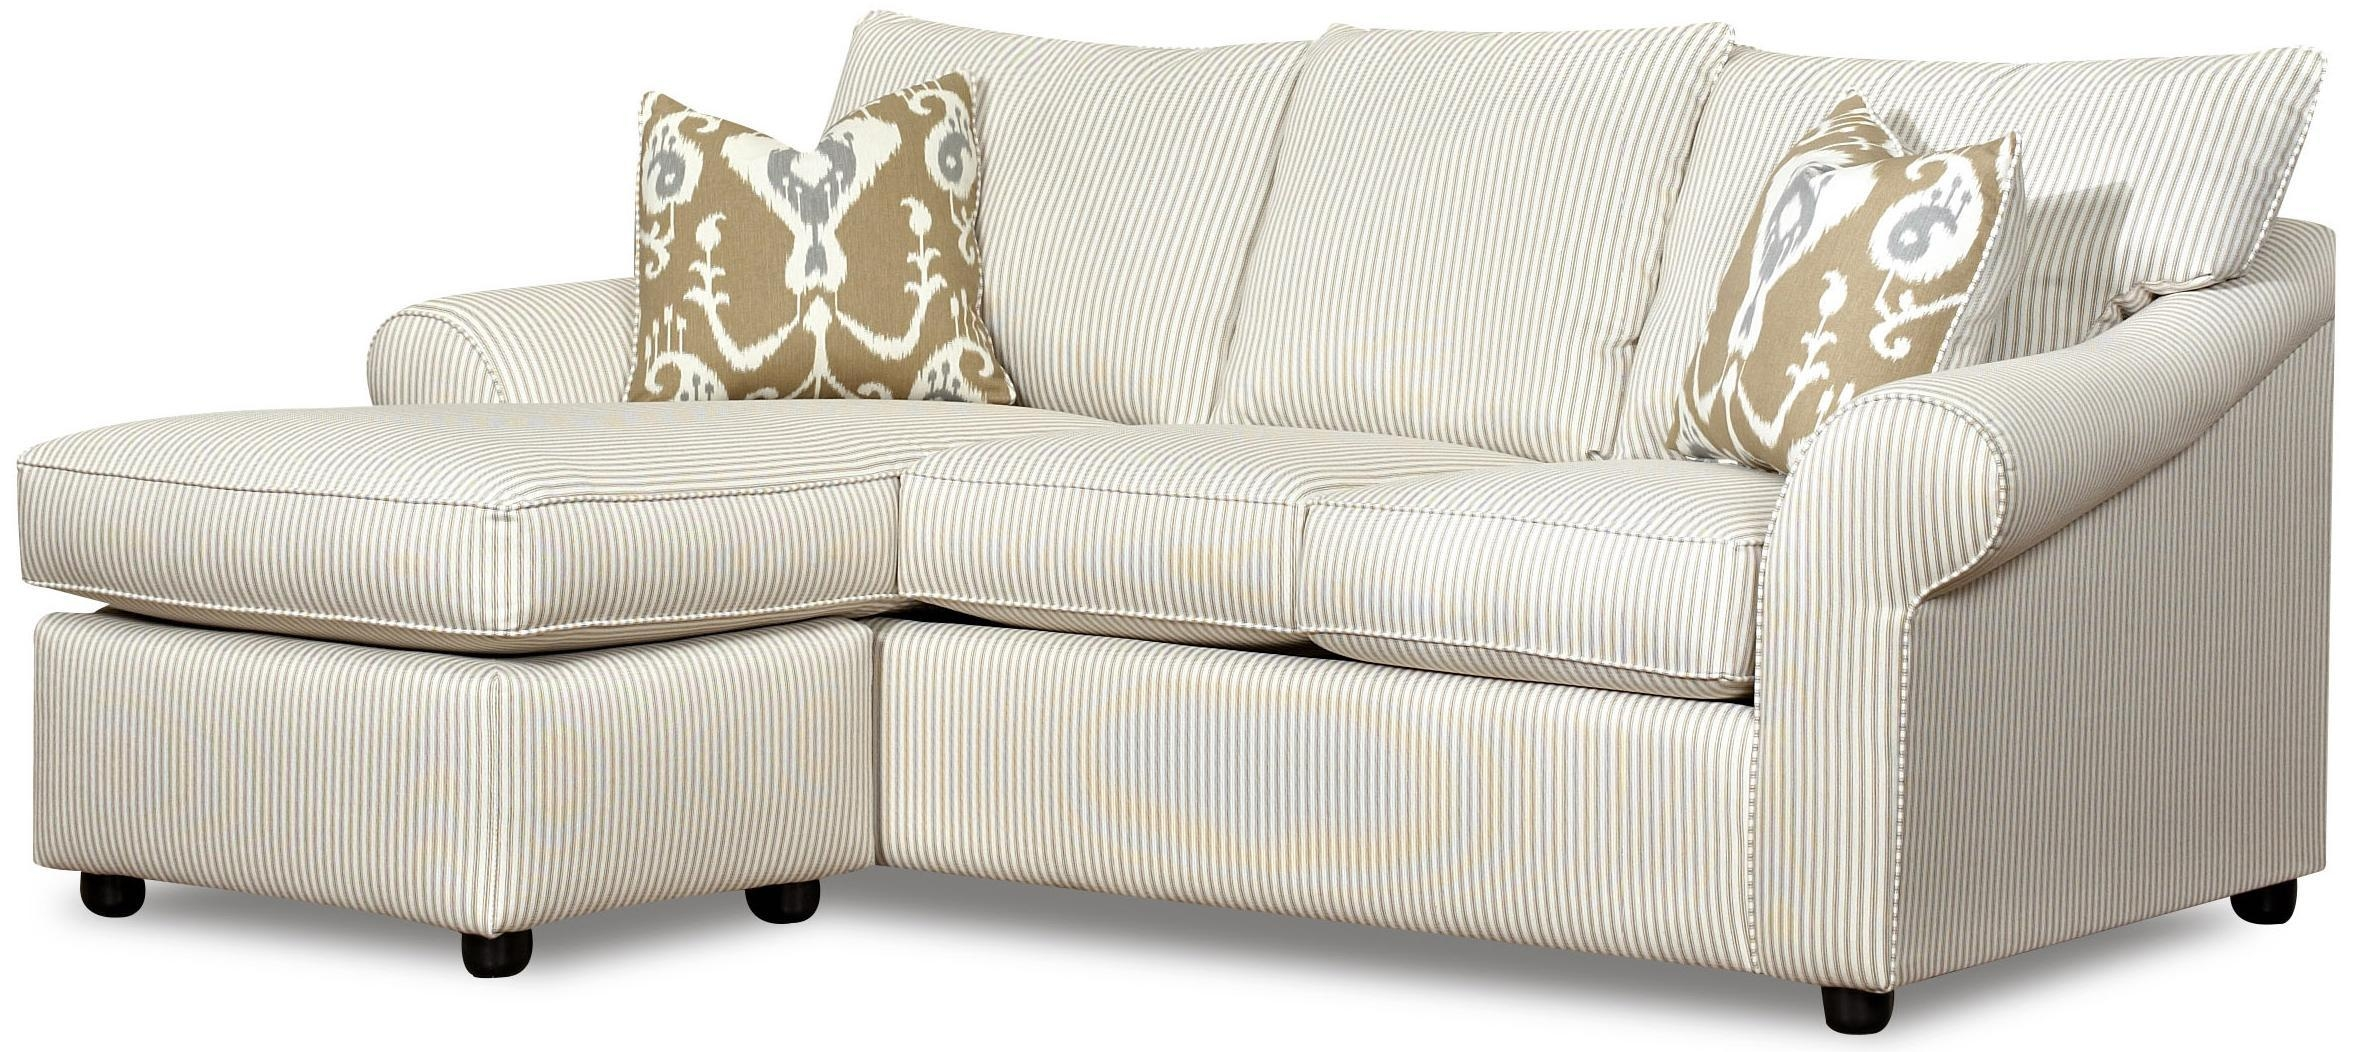 20 top sofas with chaise longue sofa ideas for Sofas con chaise longue